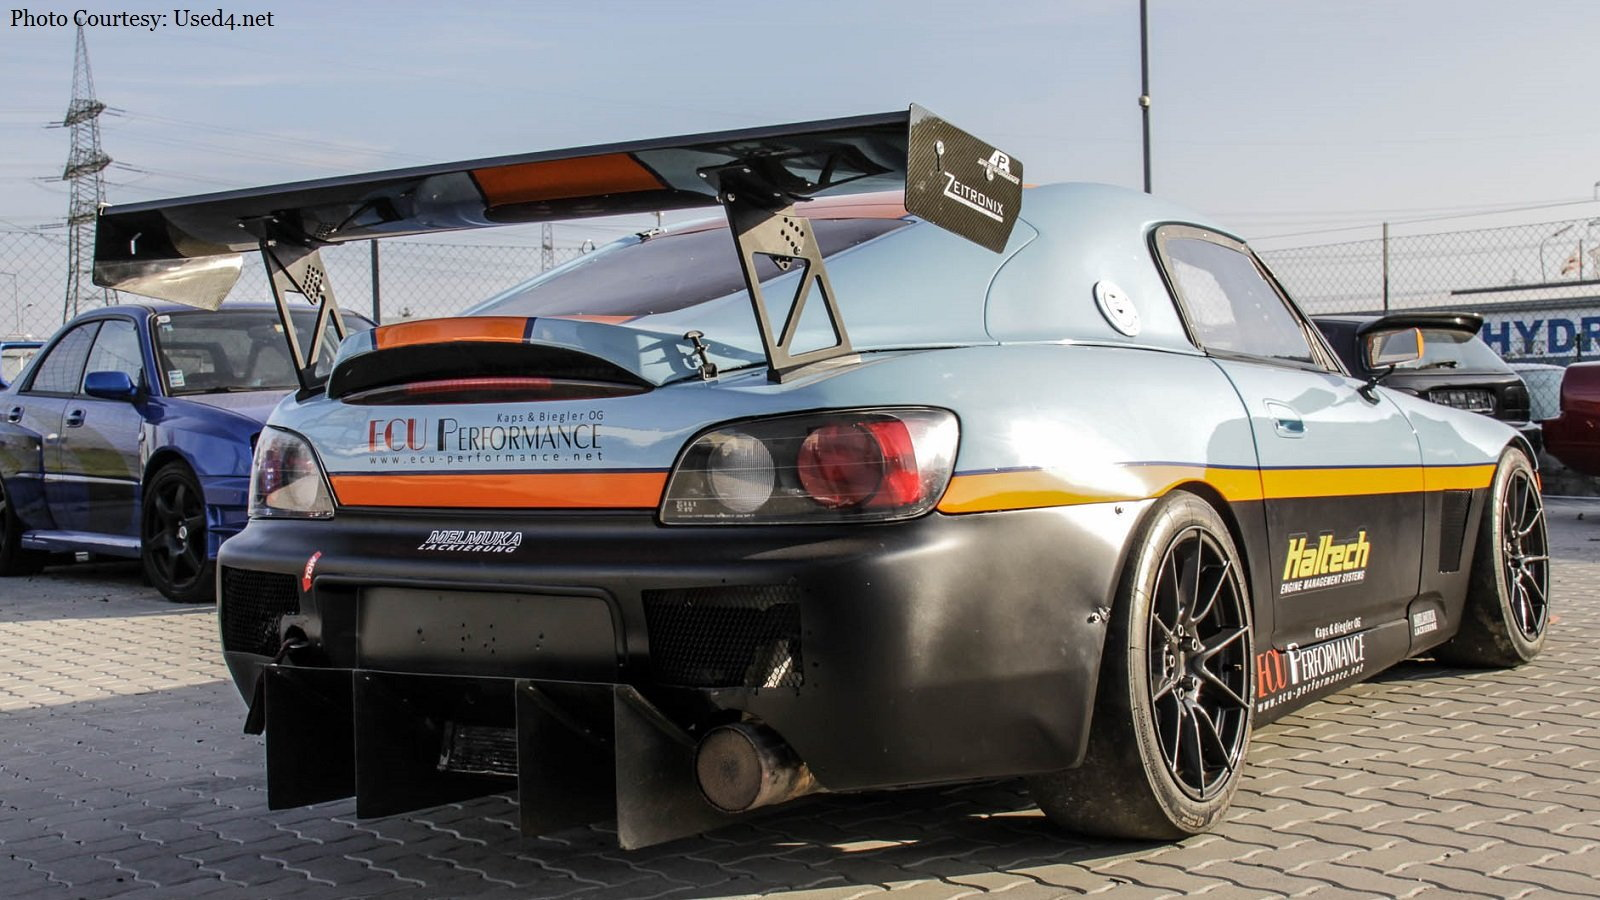 ECU Performance's S2000 with a 450HP NSX Engine